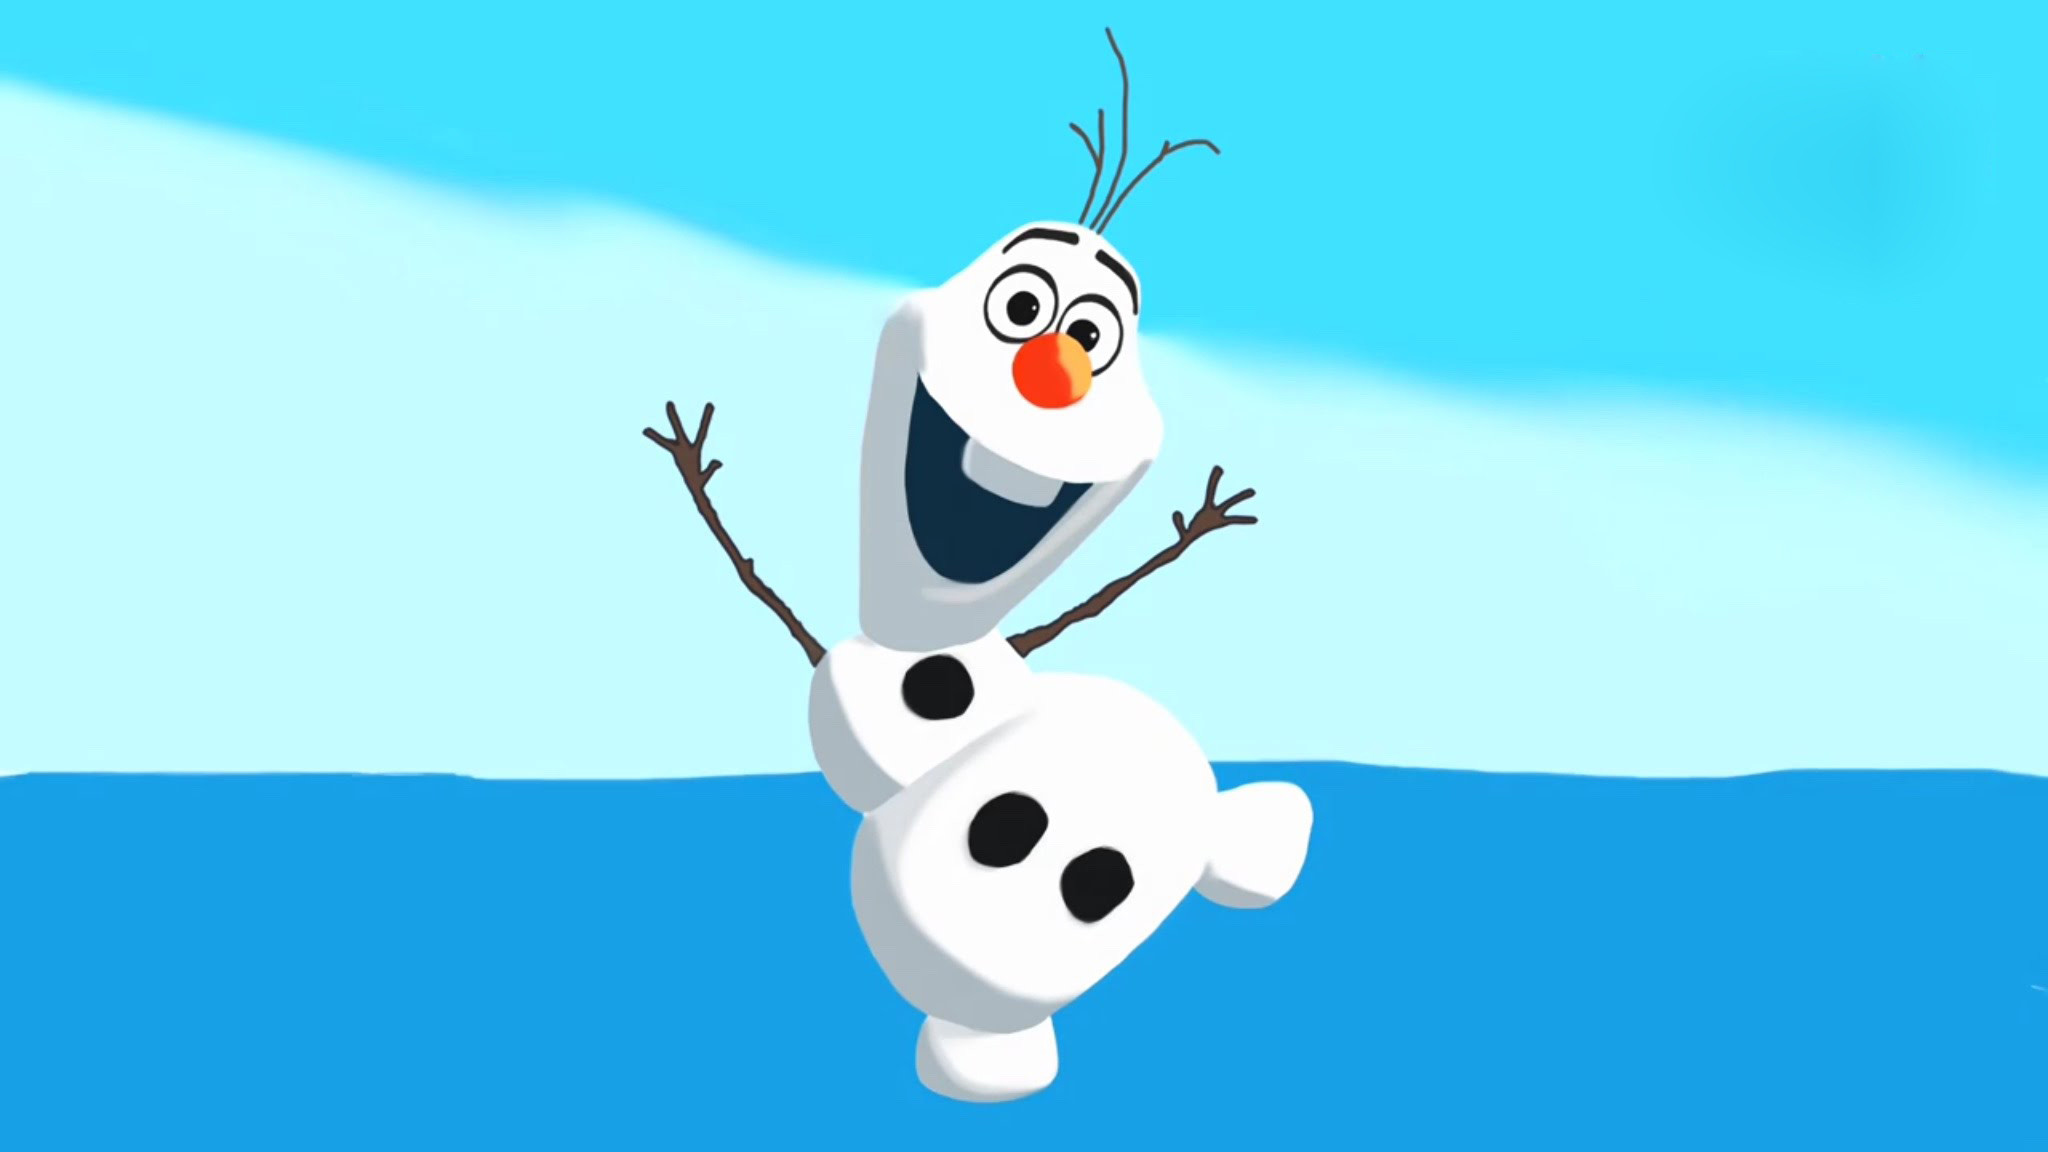 Res: 2048x1152, Screen olaf for iphone wallpaper wide cute.